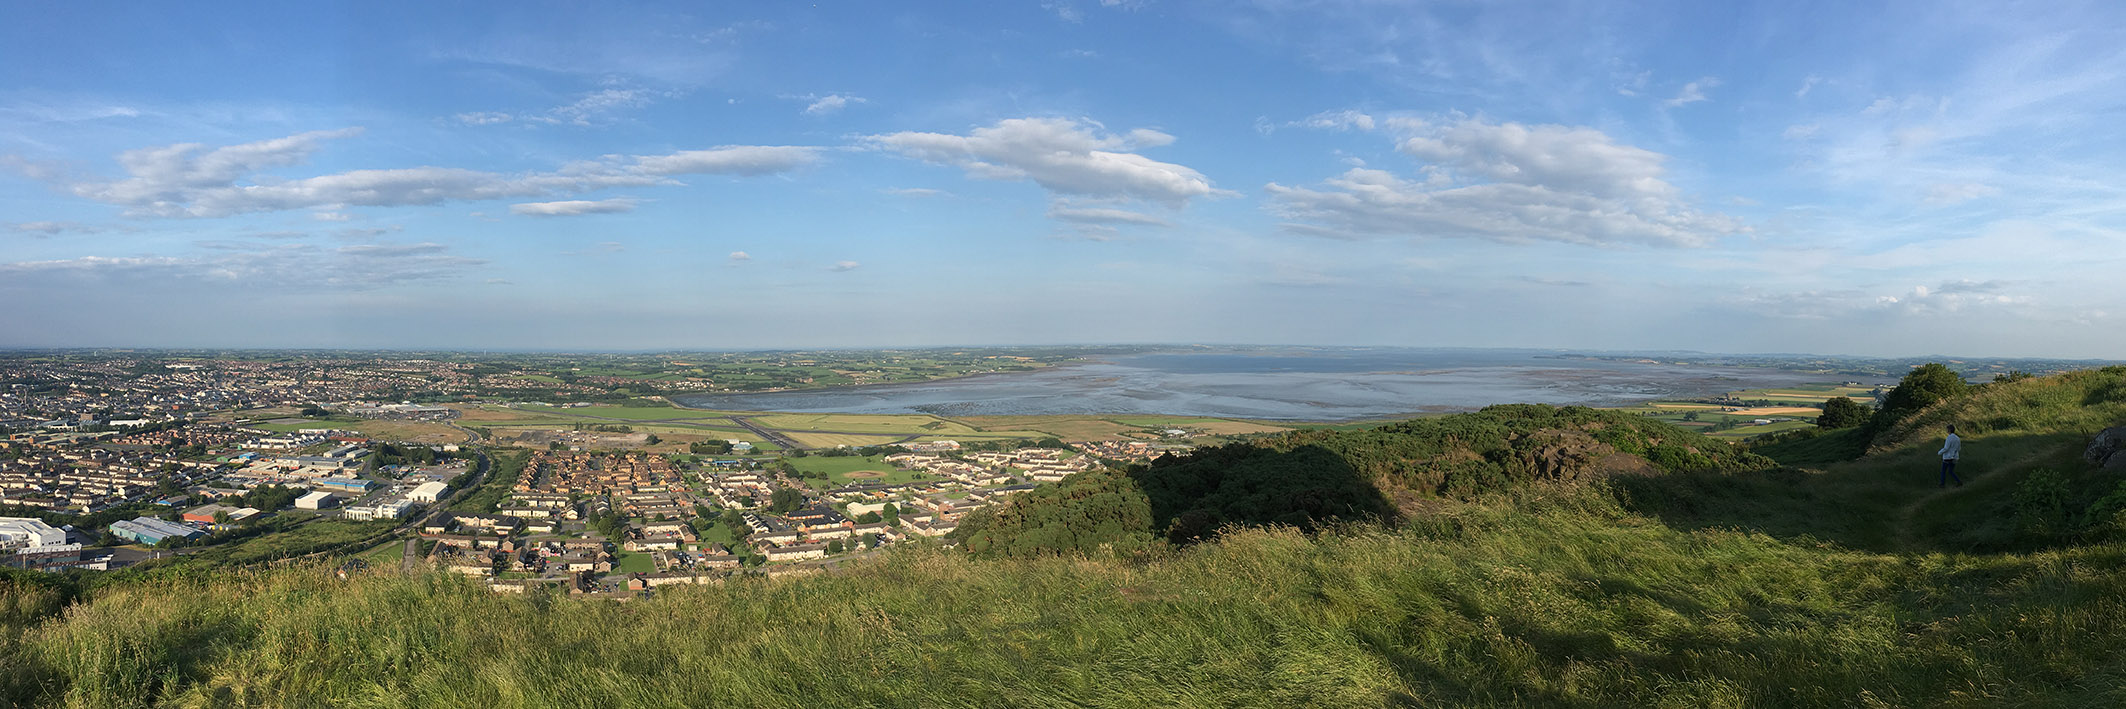 Newtownards and Strangford Lough from Scrabo Tower